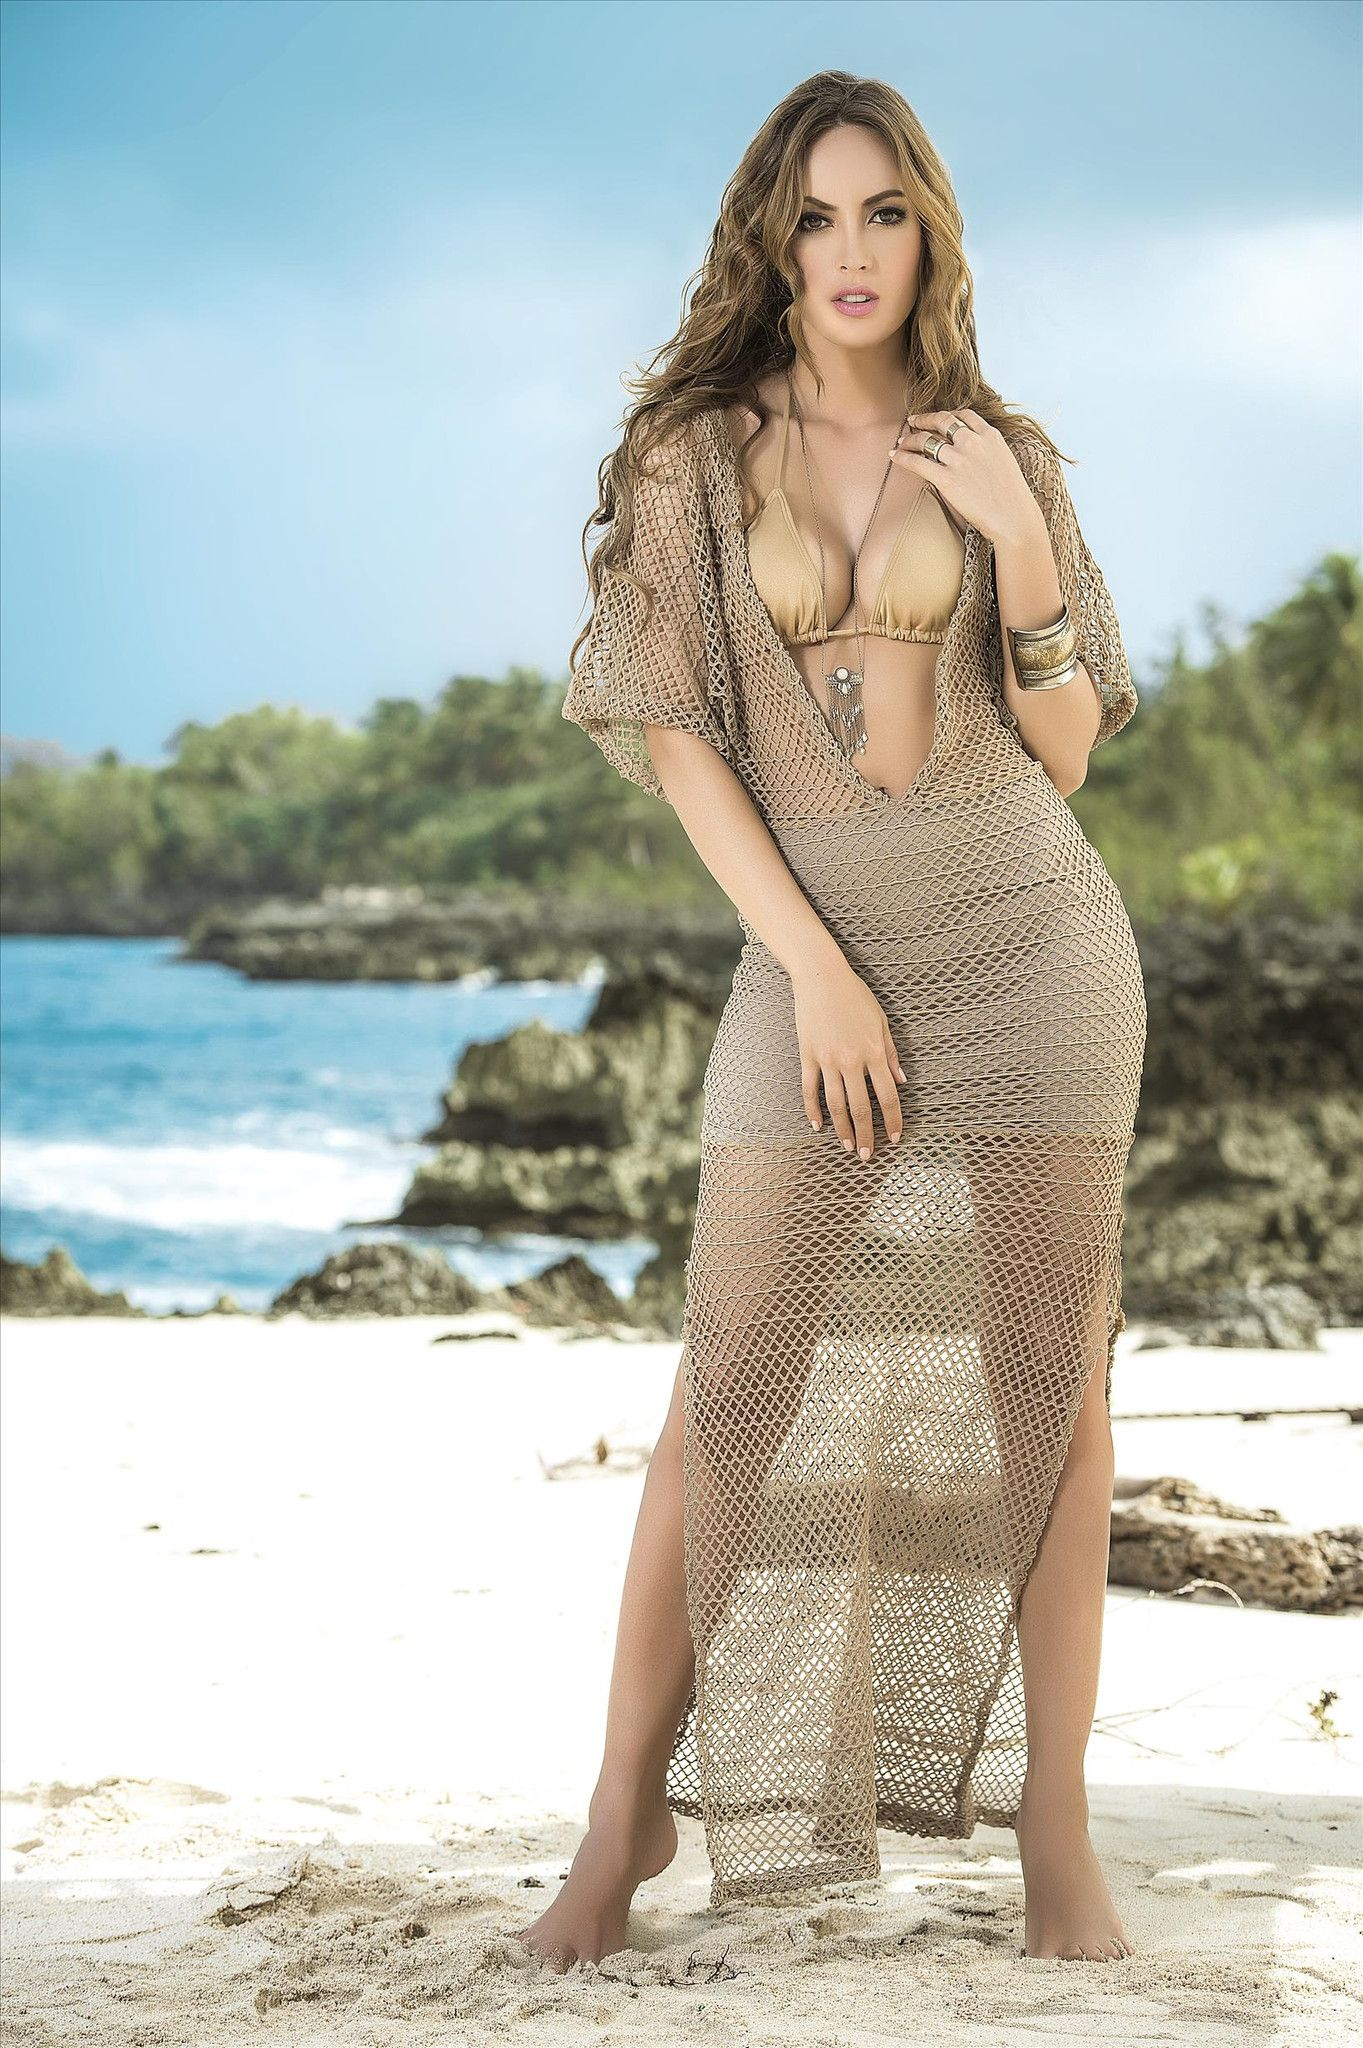 449bc84095 Fun and Sexy Mocha Crochet Maxi Dress Cover-up Beach Dress - SoHot Swimwear  - Cover-Ups - Mapale - 1